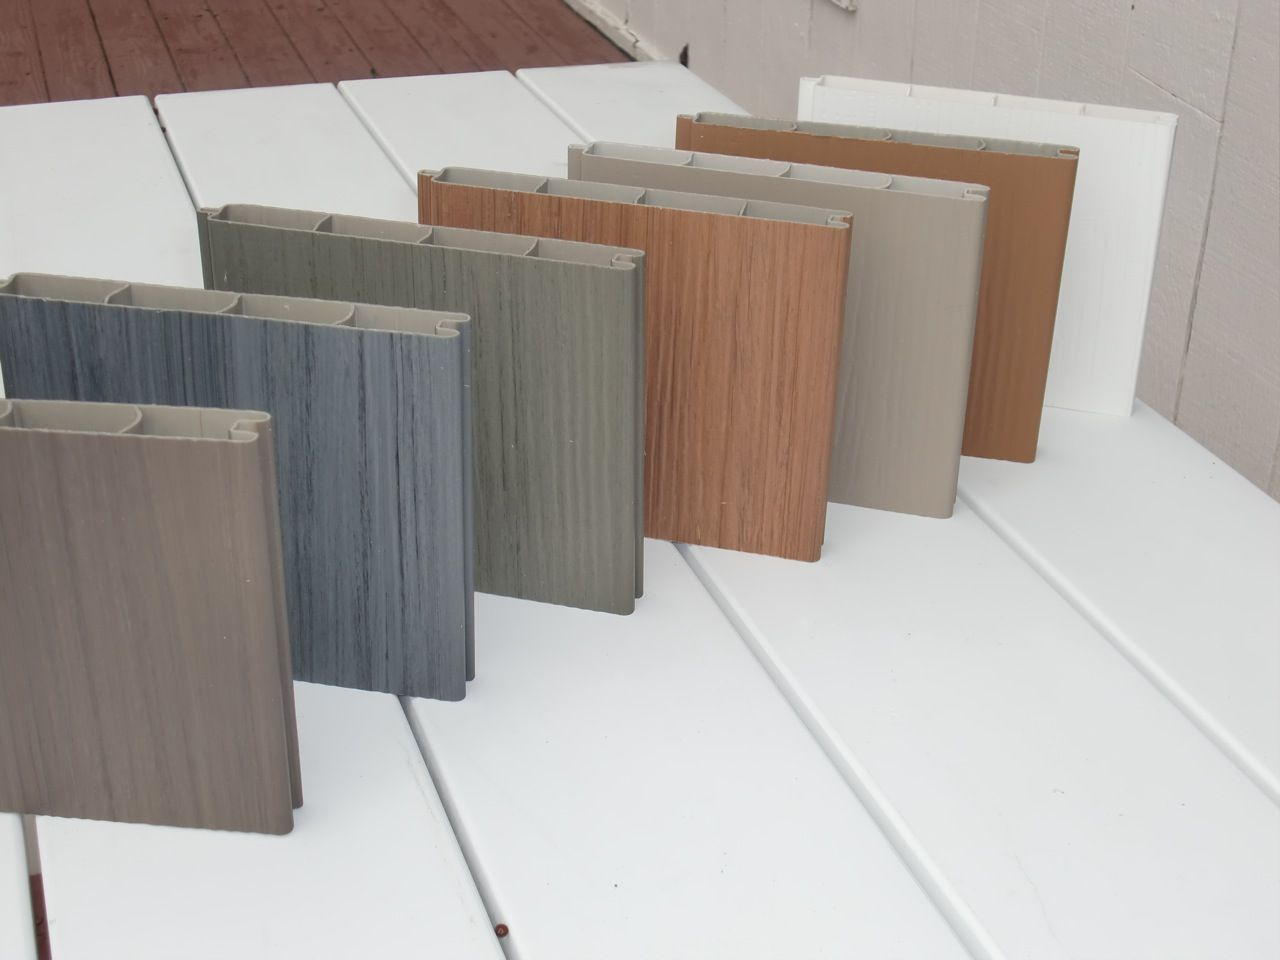 Vinyl fence in many colors